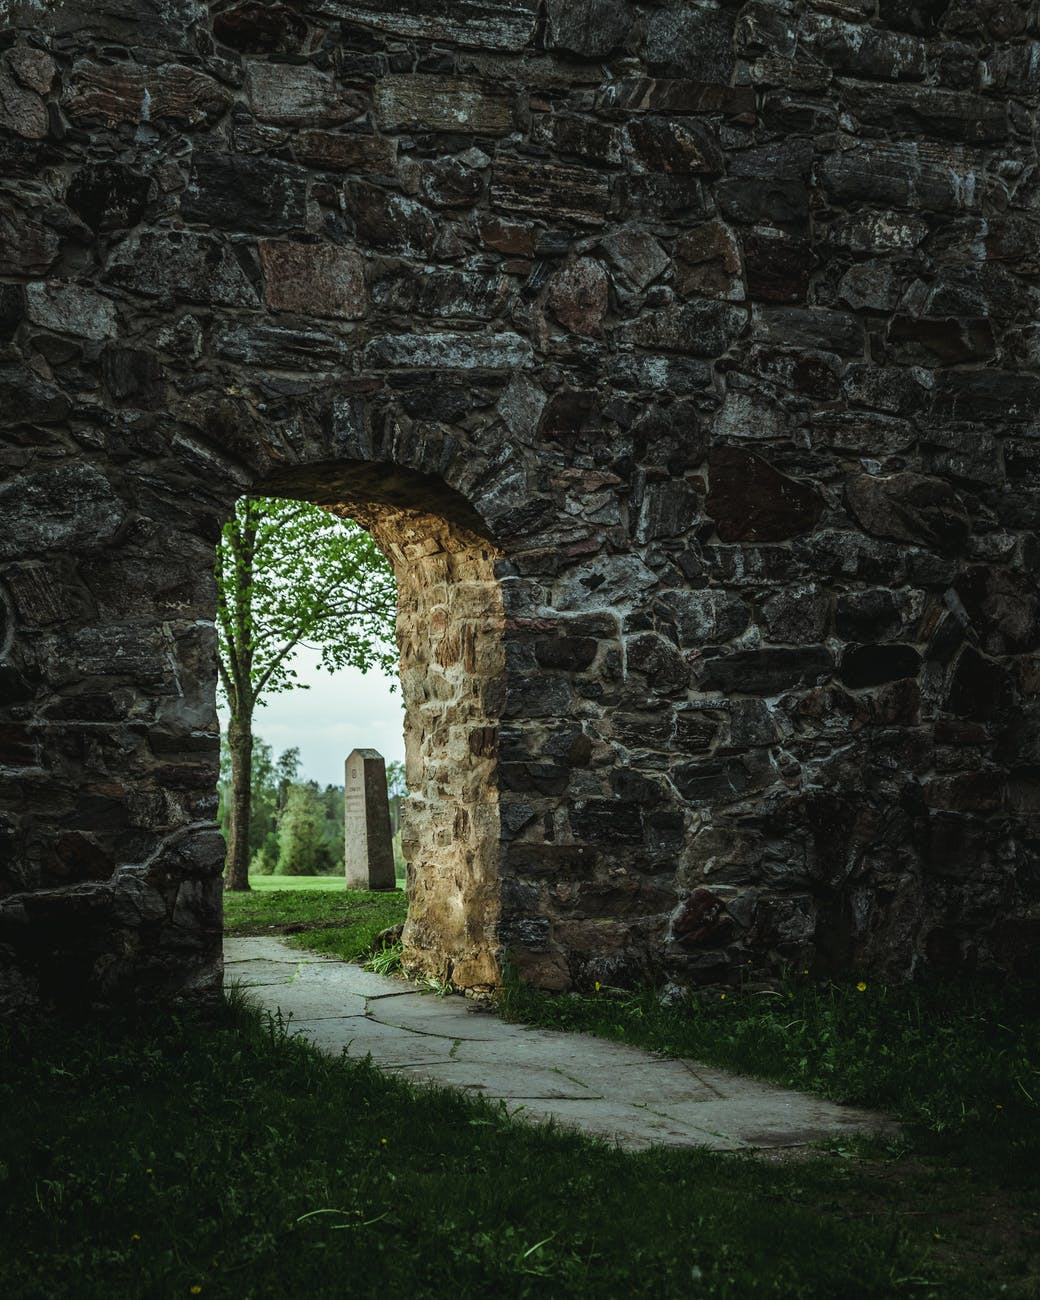 A stone archway opening to a cemetery.